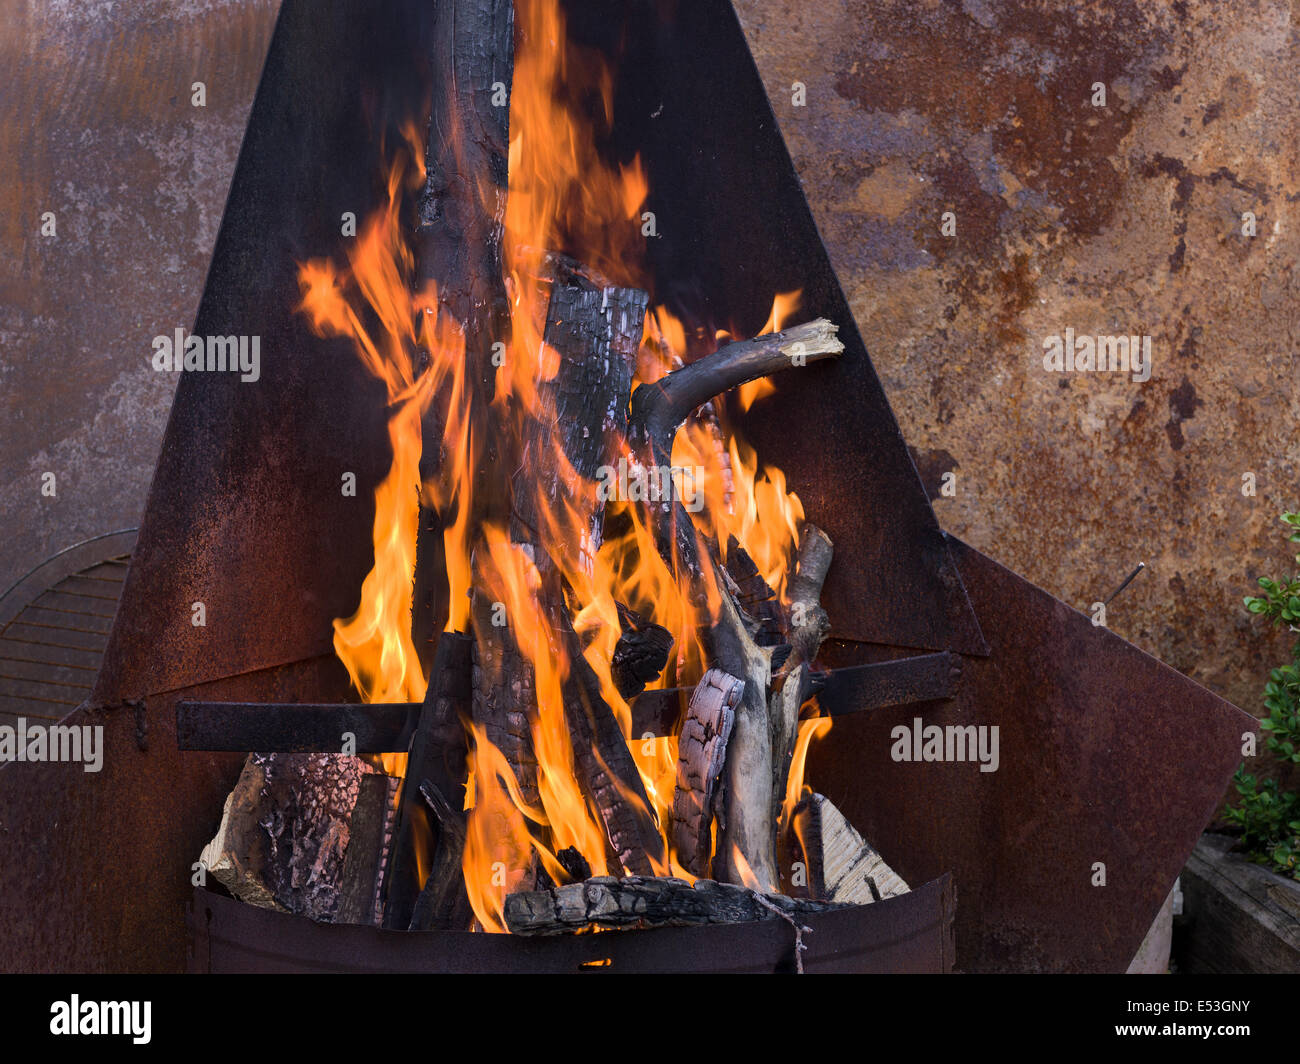 fireplace fire place garden grill hot wood burn burning - Stock Image